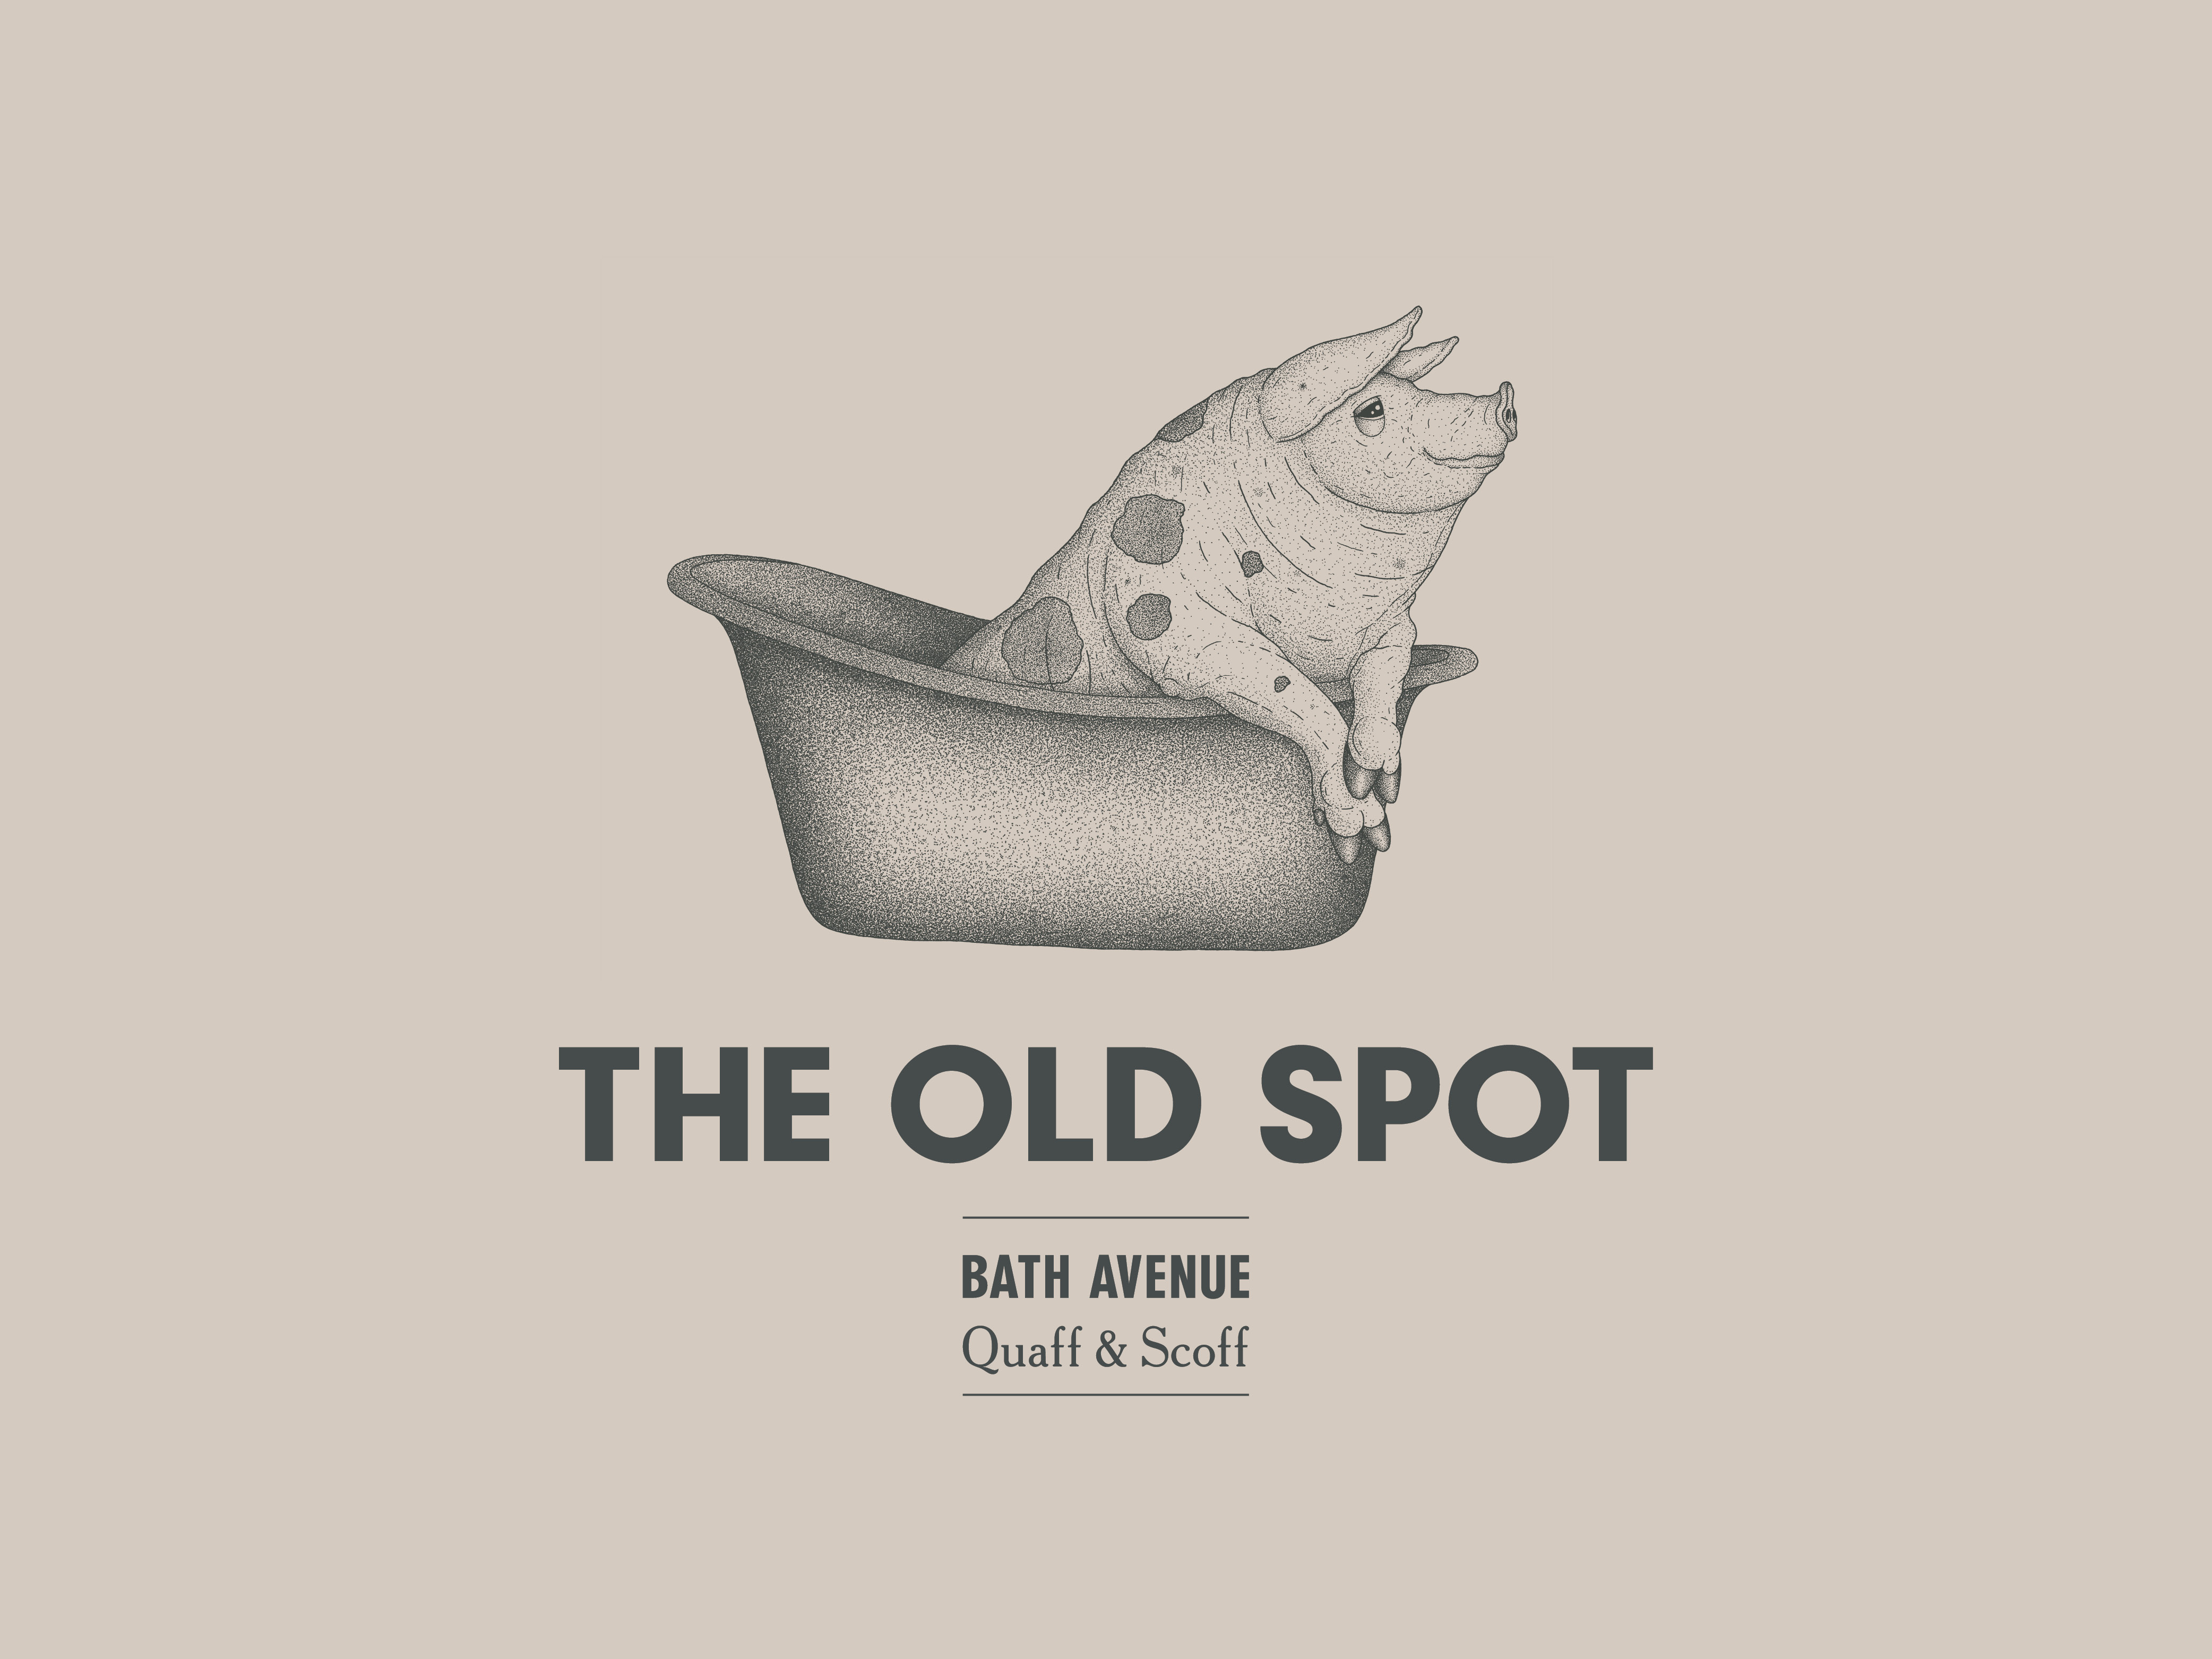 Cover image: The Old Spot (2014)